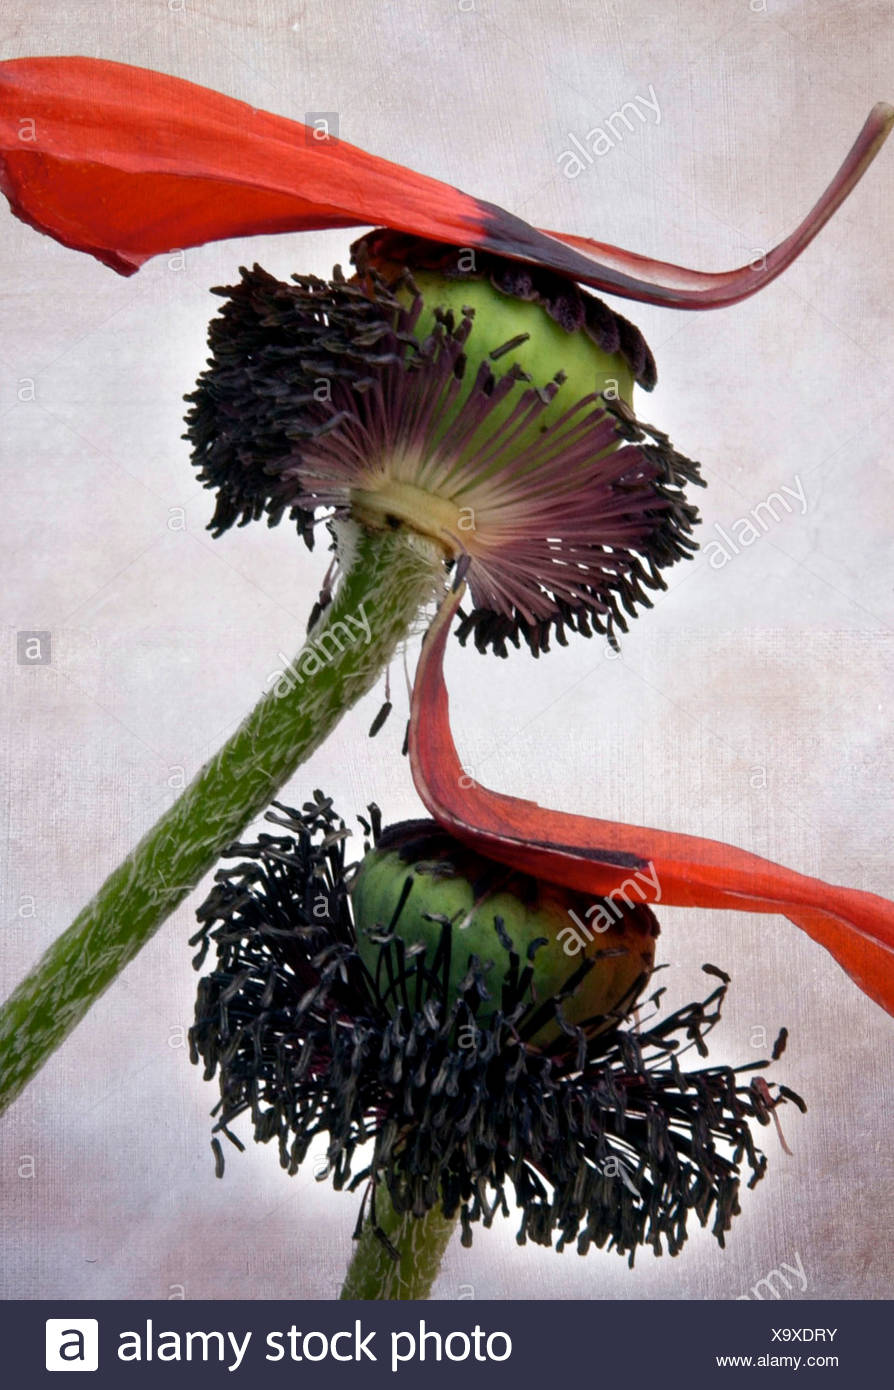 Withered poppy stock photos withered poppy stock images alamy dying flowers stock image mightylinksfo Gallery